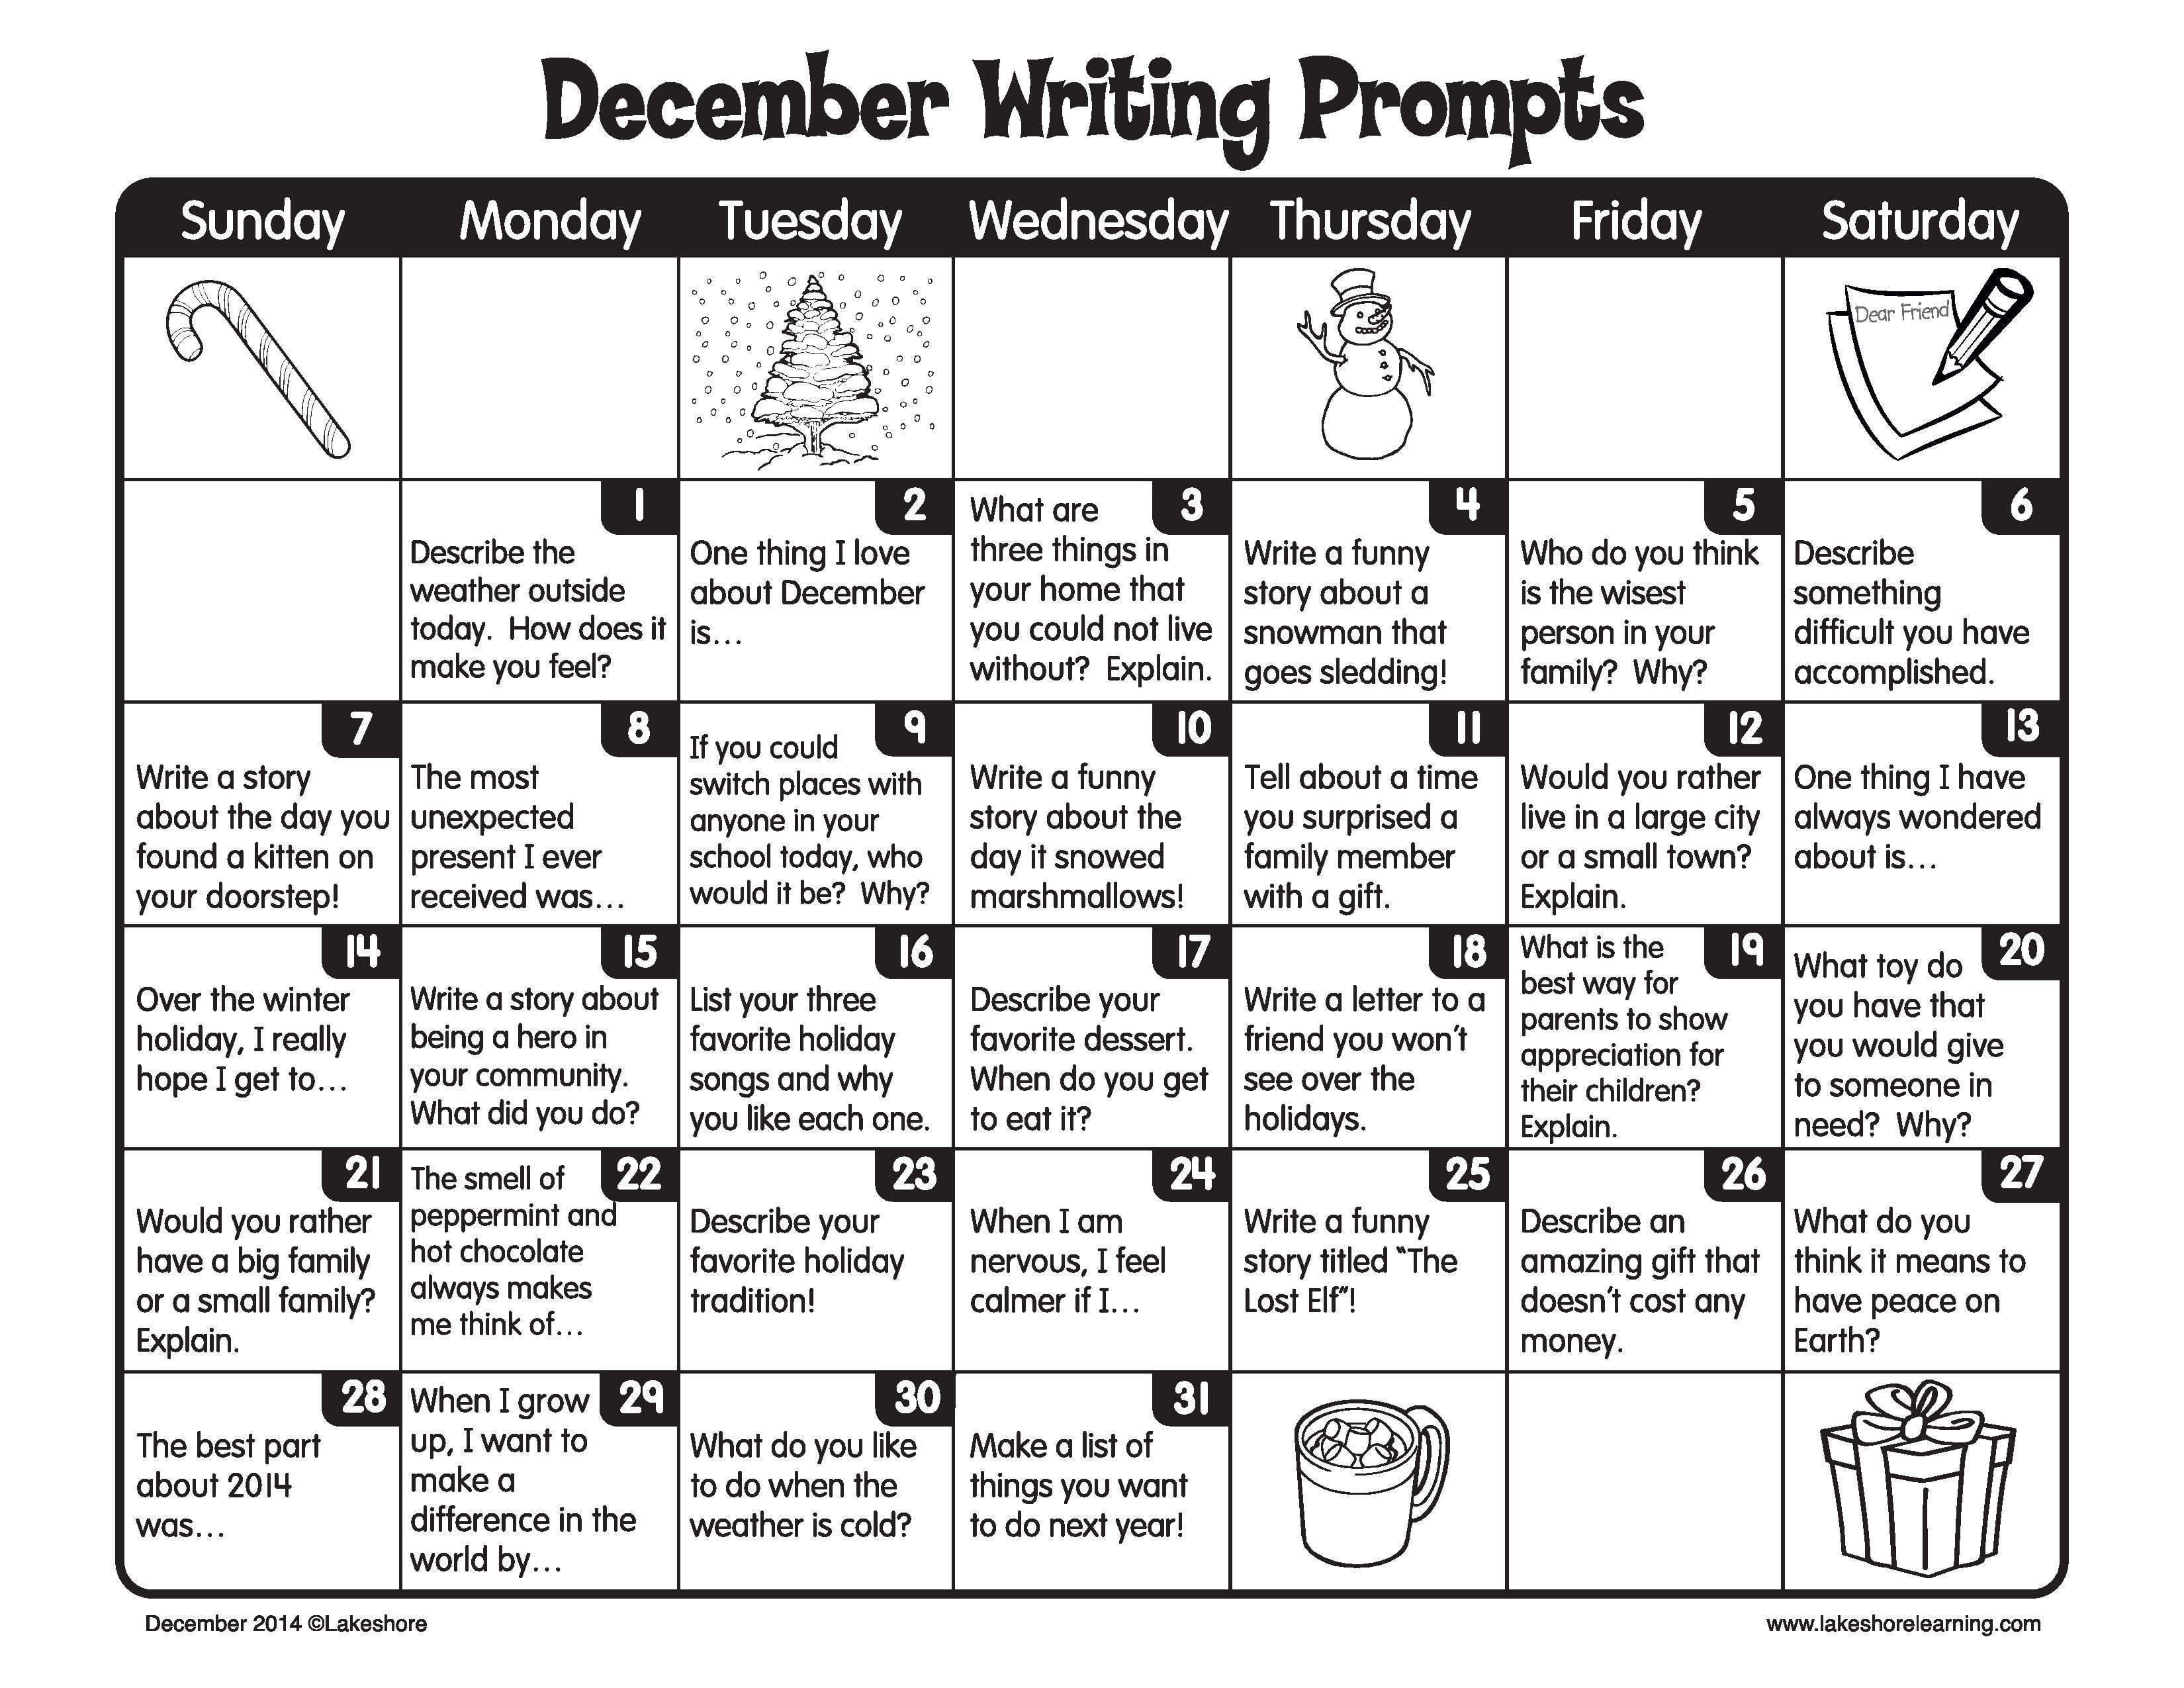 December Is A Great Time For Kids To Get Creative And